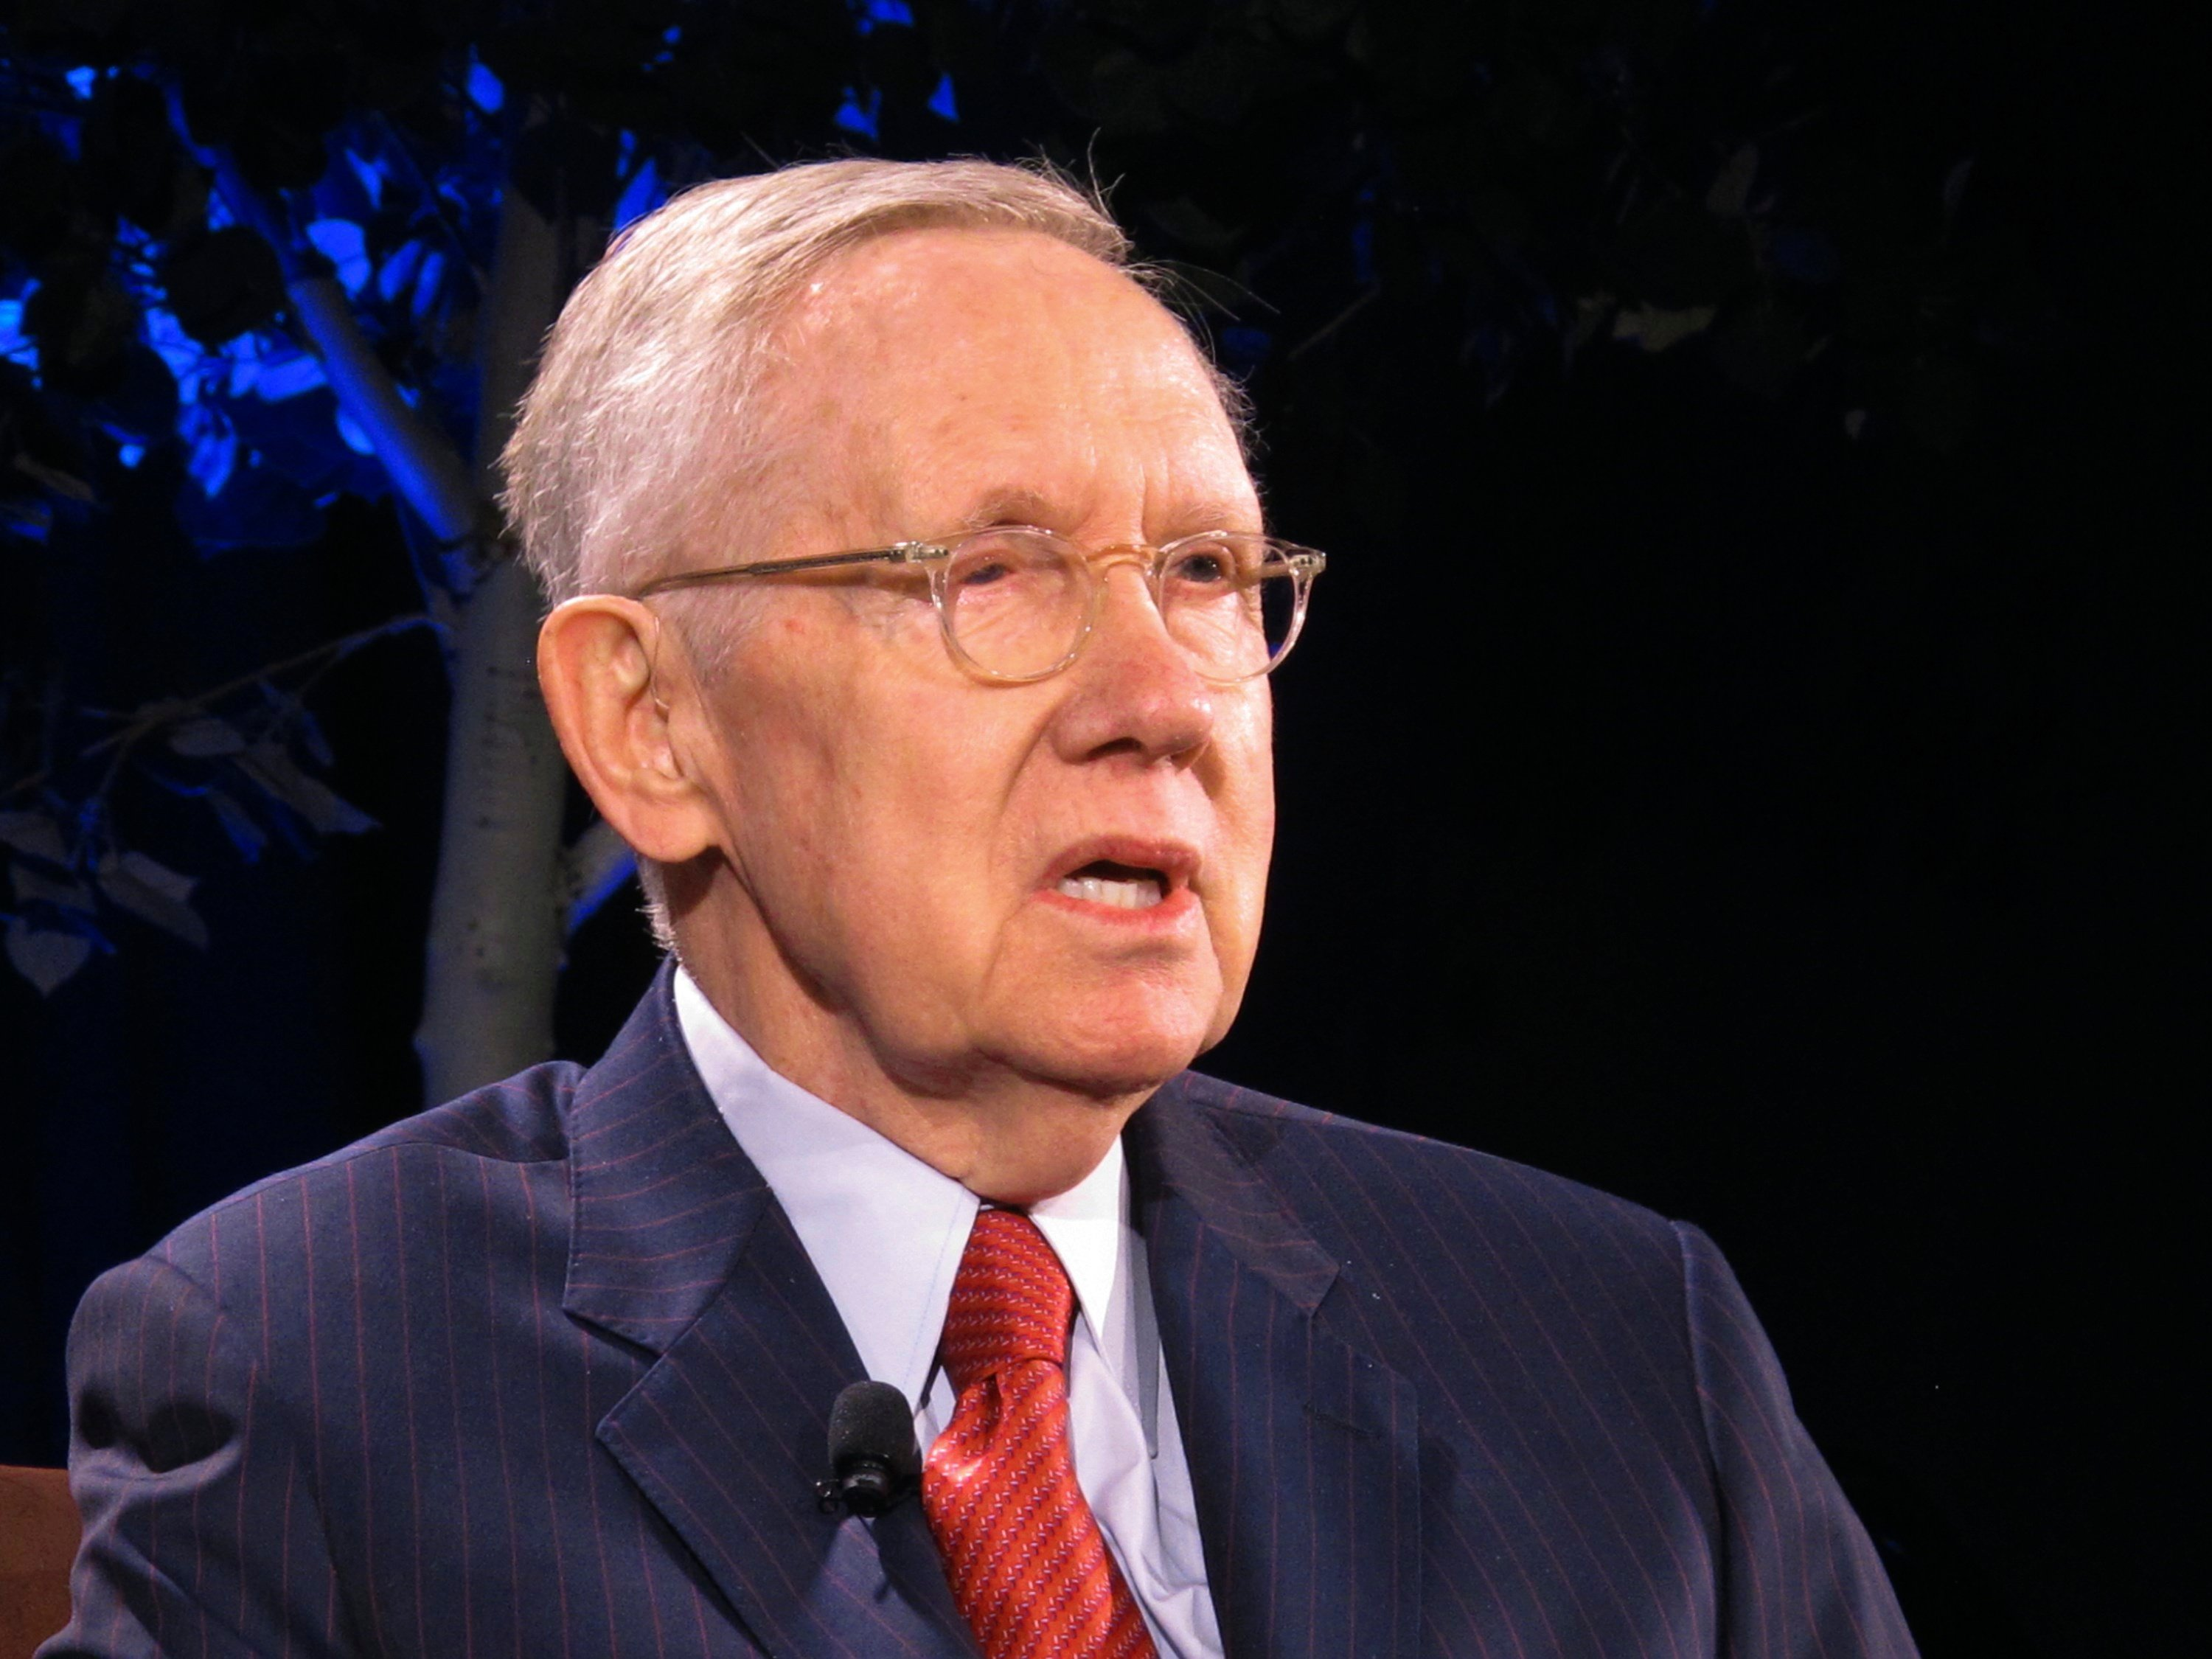 Harry Reid Undergoing Pancreatic Cancer Treatment